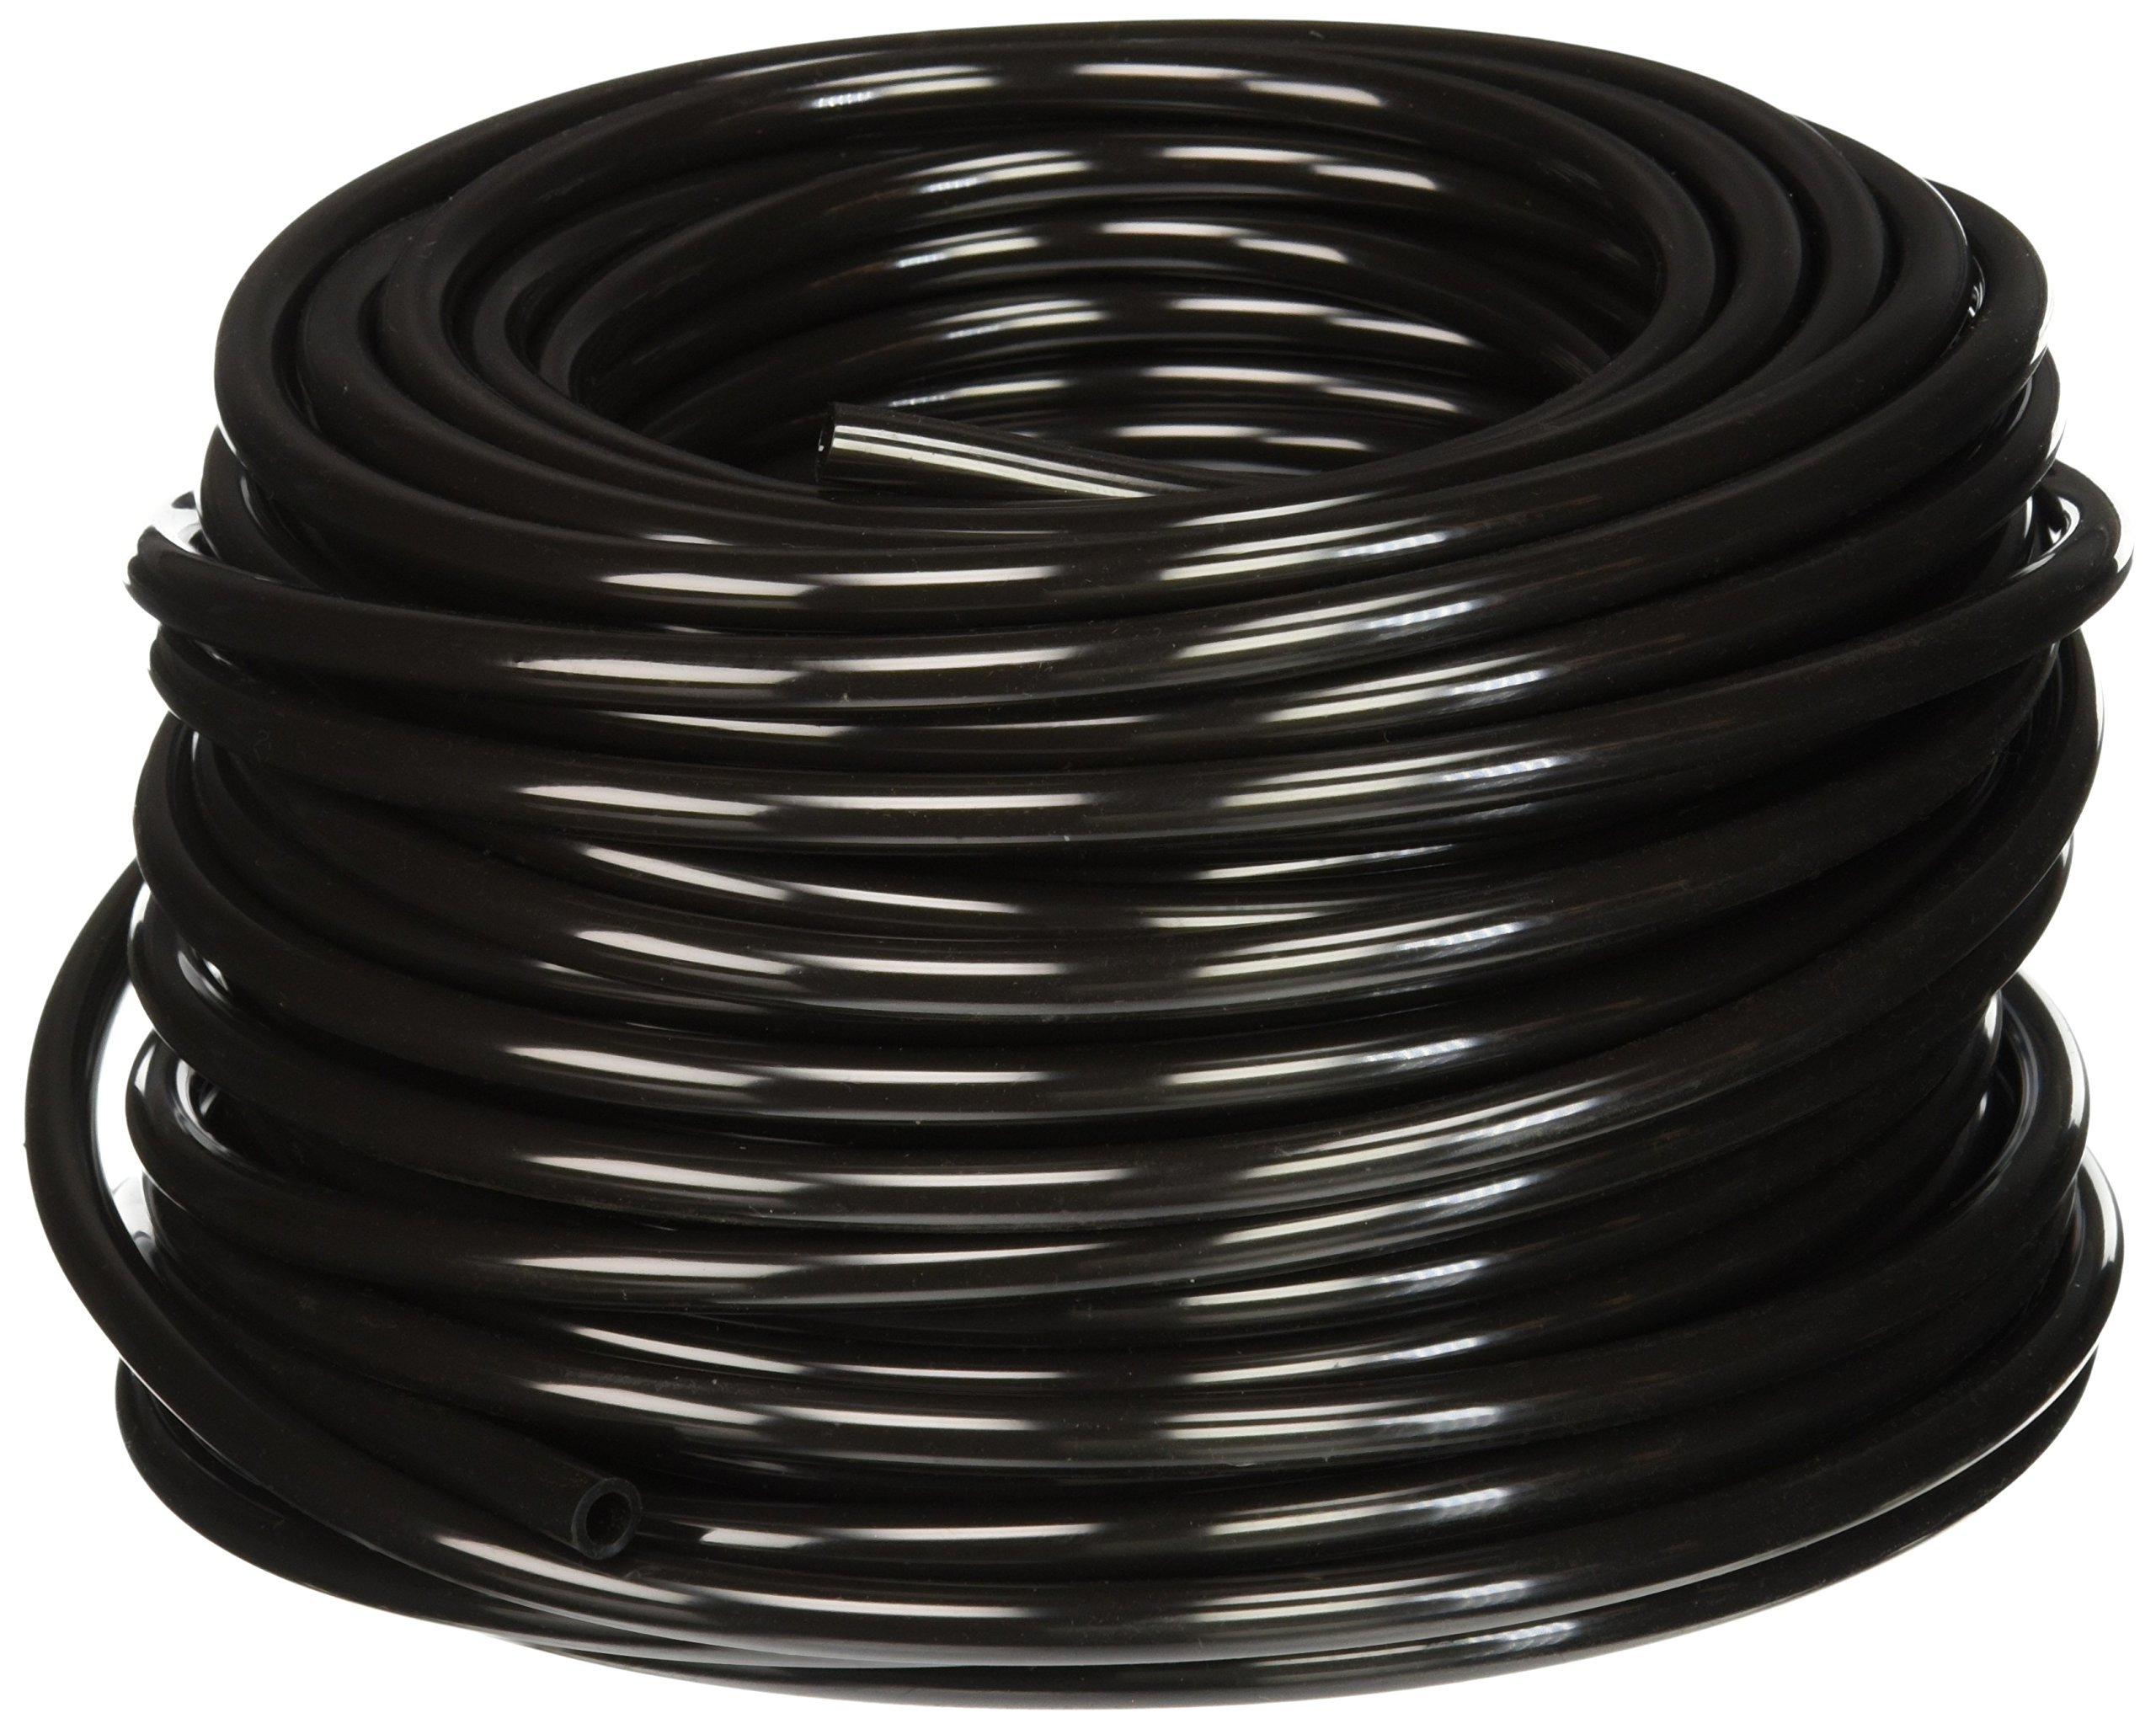 Hydrofarm HGTB25 1/4-Inch Outside Diameter Black 100' Tubing, 45 PSI Operating Pressure at 70 Degrees by Hydrofarm